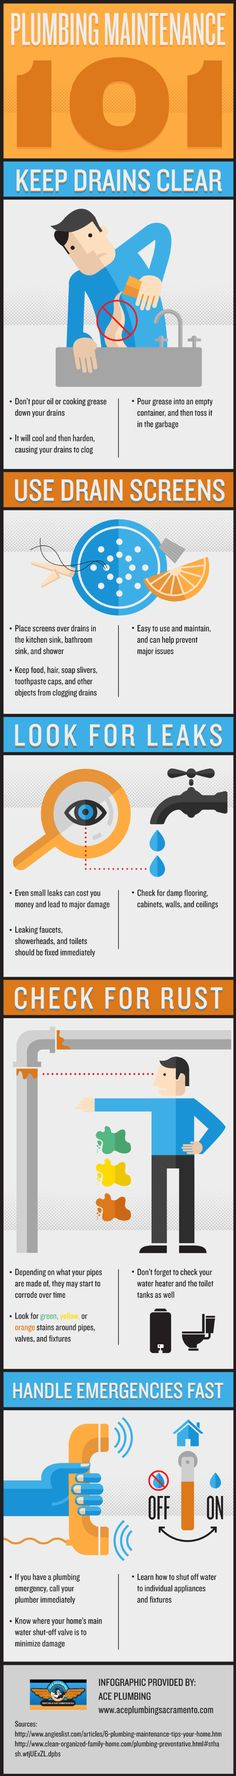 Spot a leak in your home? Even small leaks can cost you money and lead to major damage if left untreated! Take a look at this Sacramento plumbing infographic to find out what you should do if you find a leak in your home.